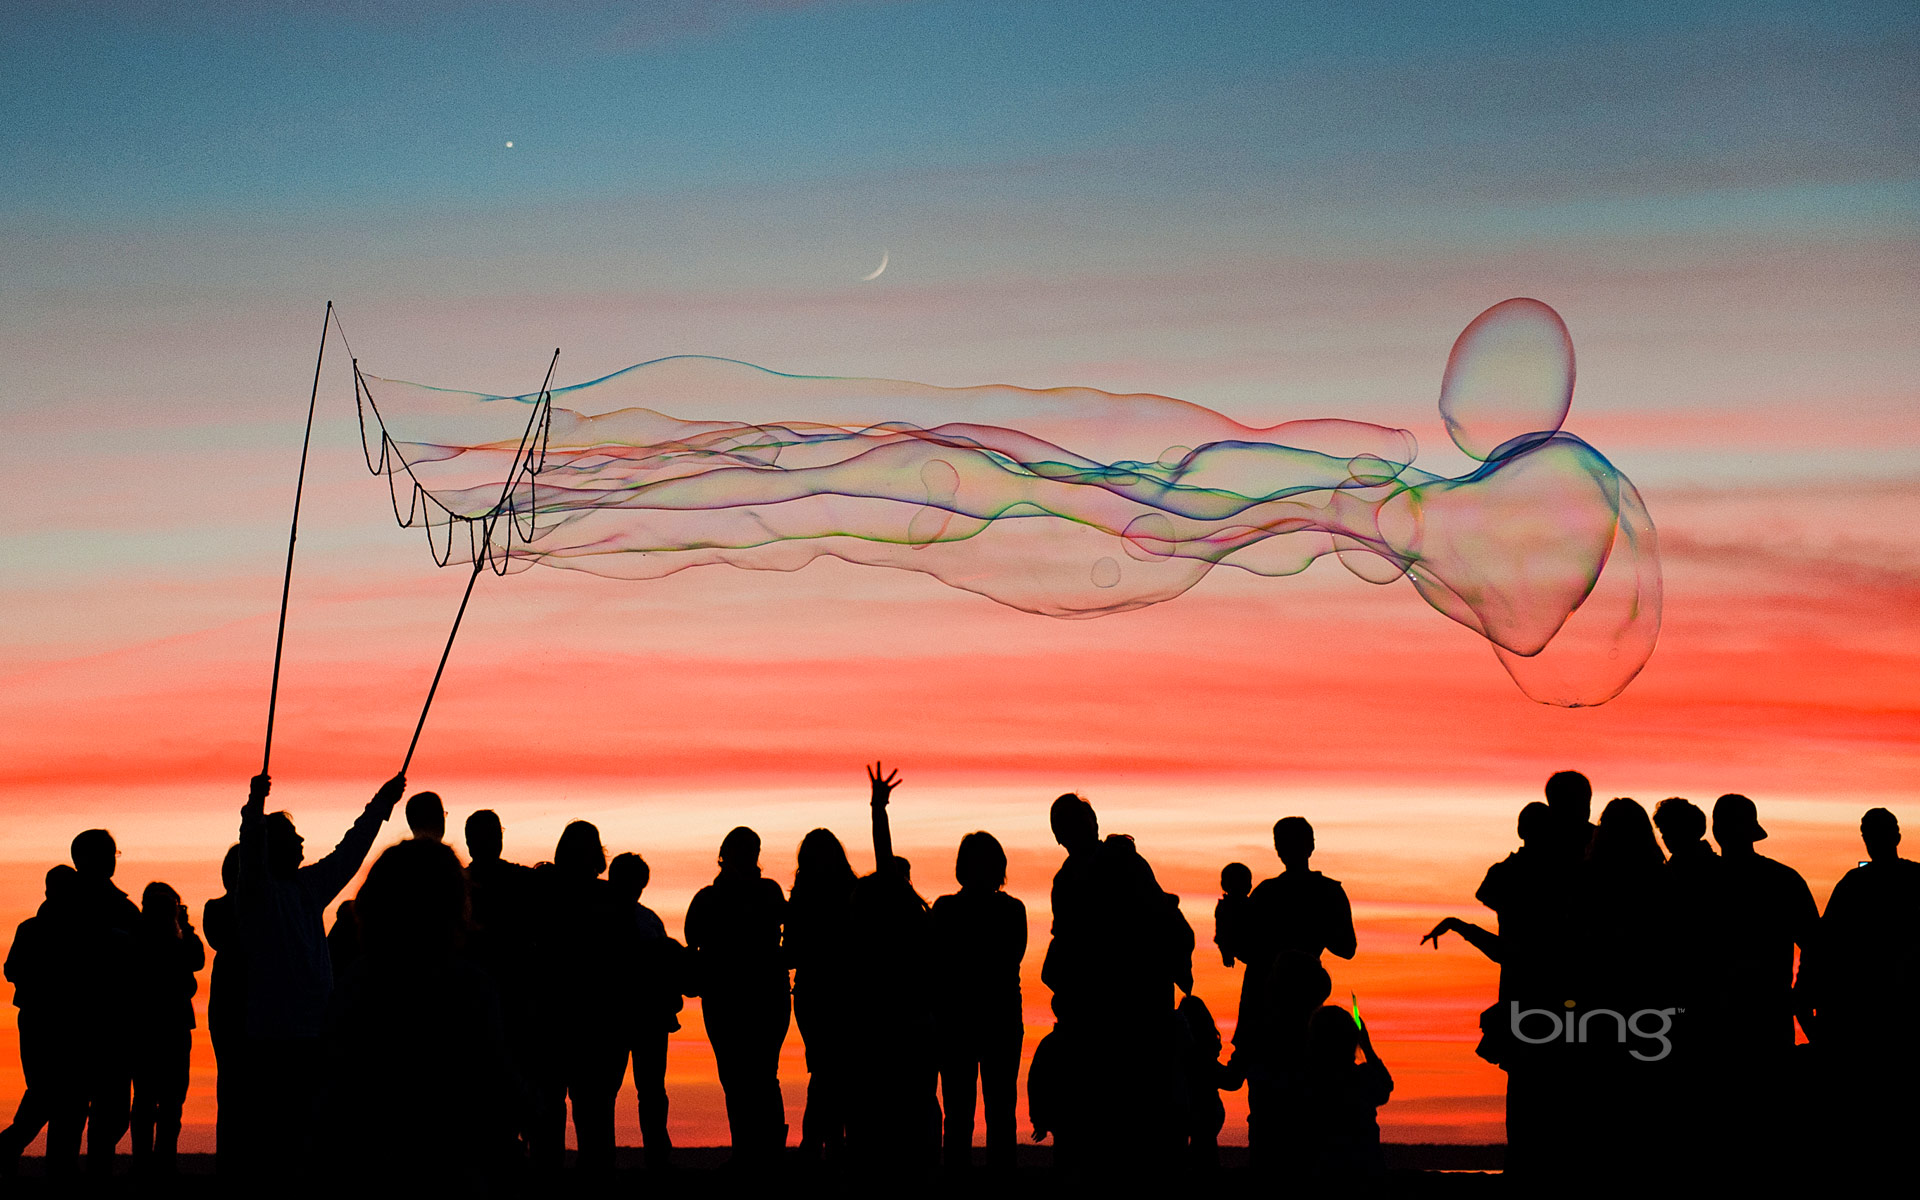 Large bubbles at sunset, Jockey's Ridge, Outer Banks, North Carolina